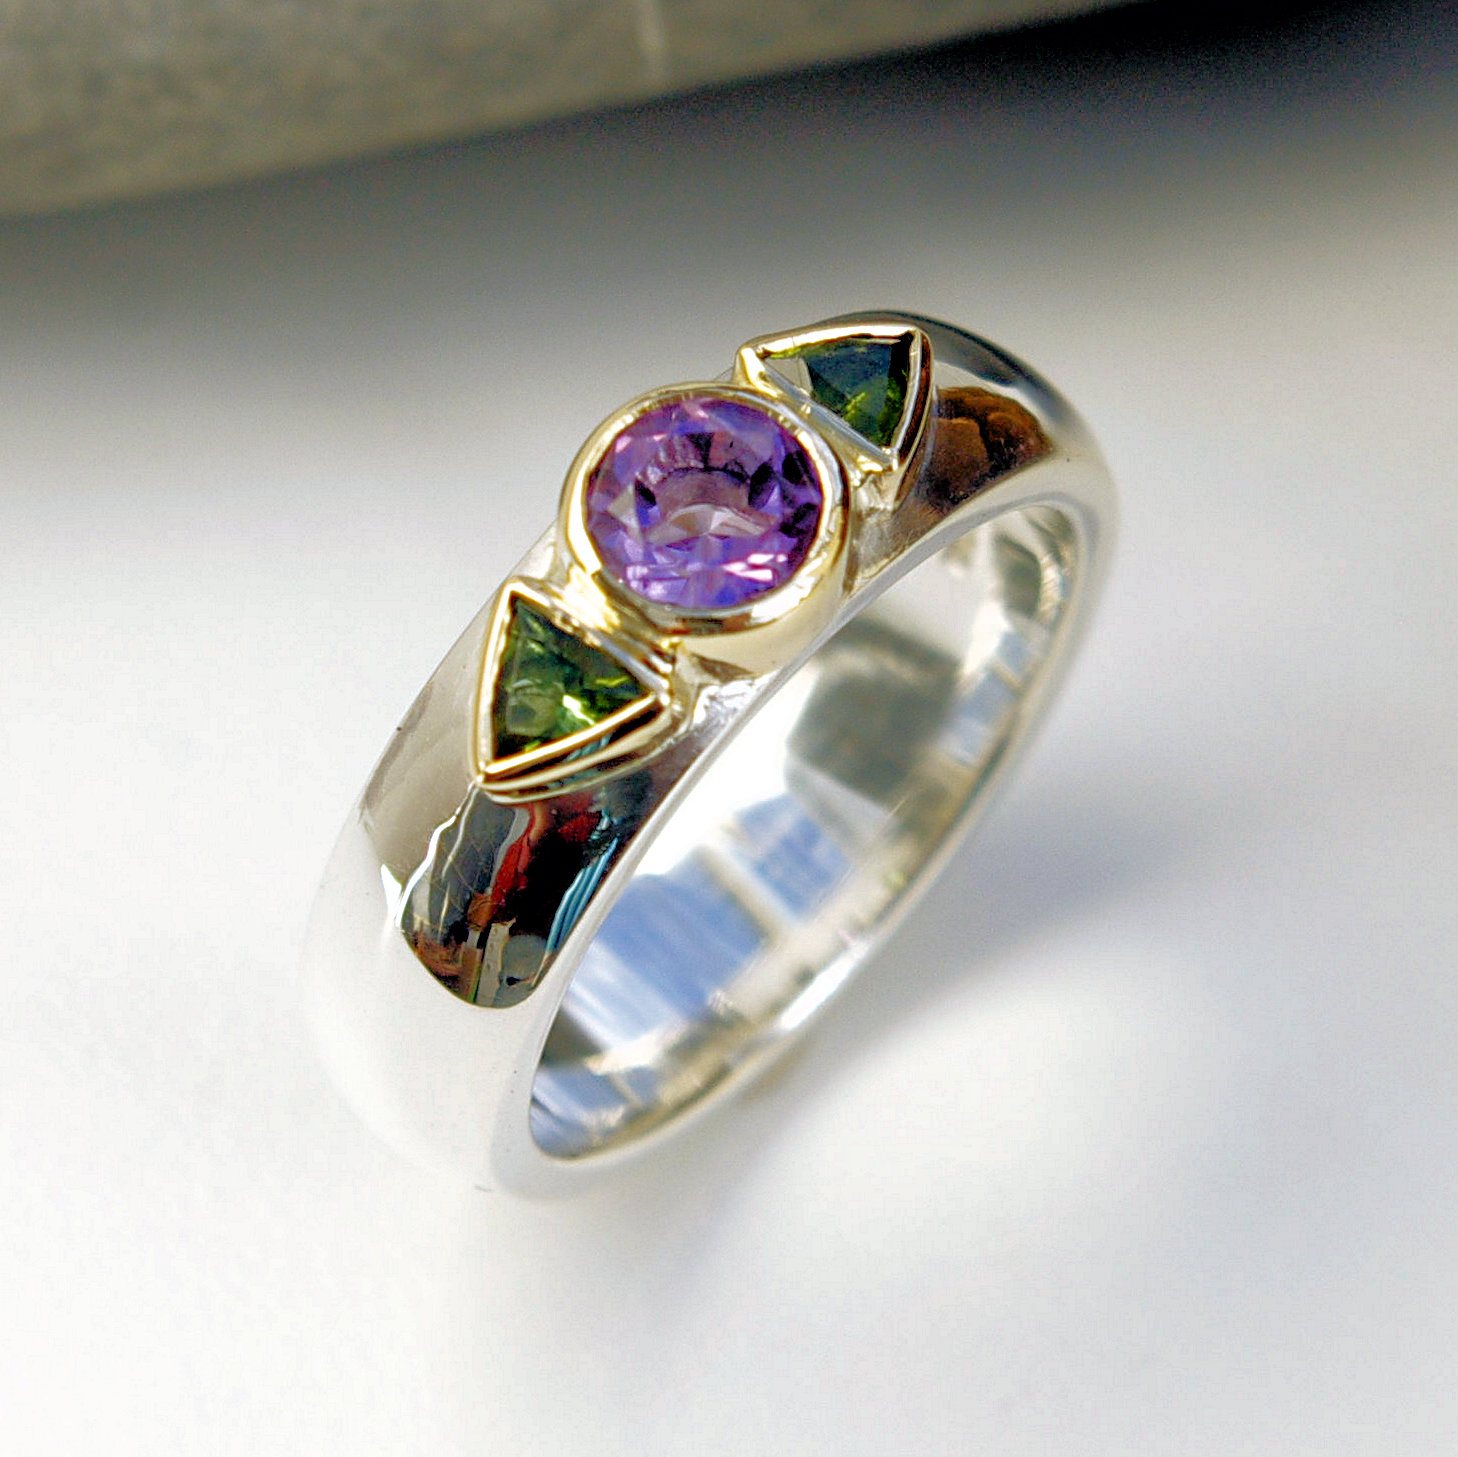 Amethyst & tourmaline ring